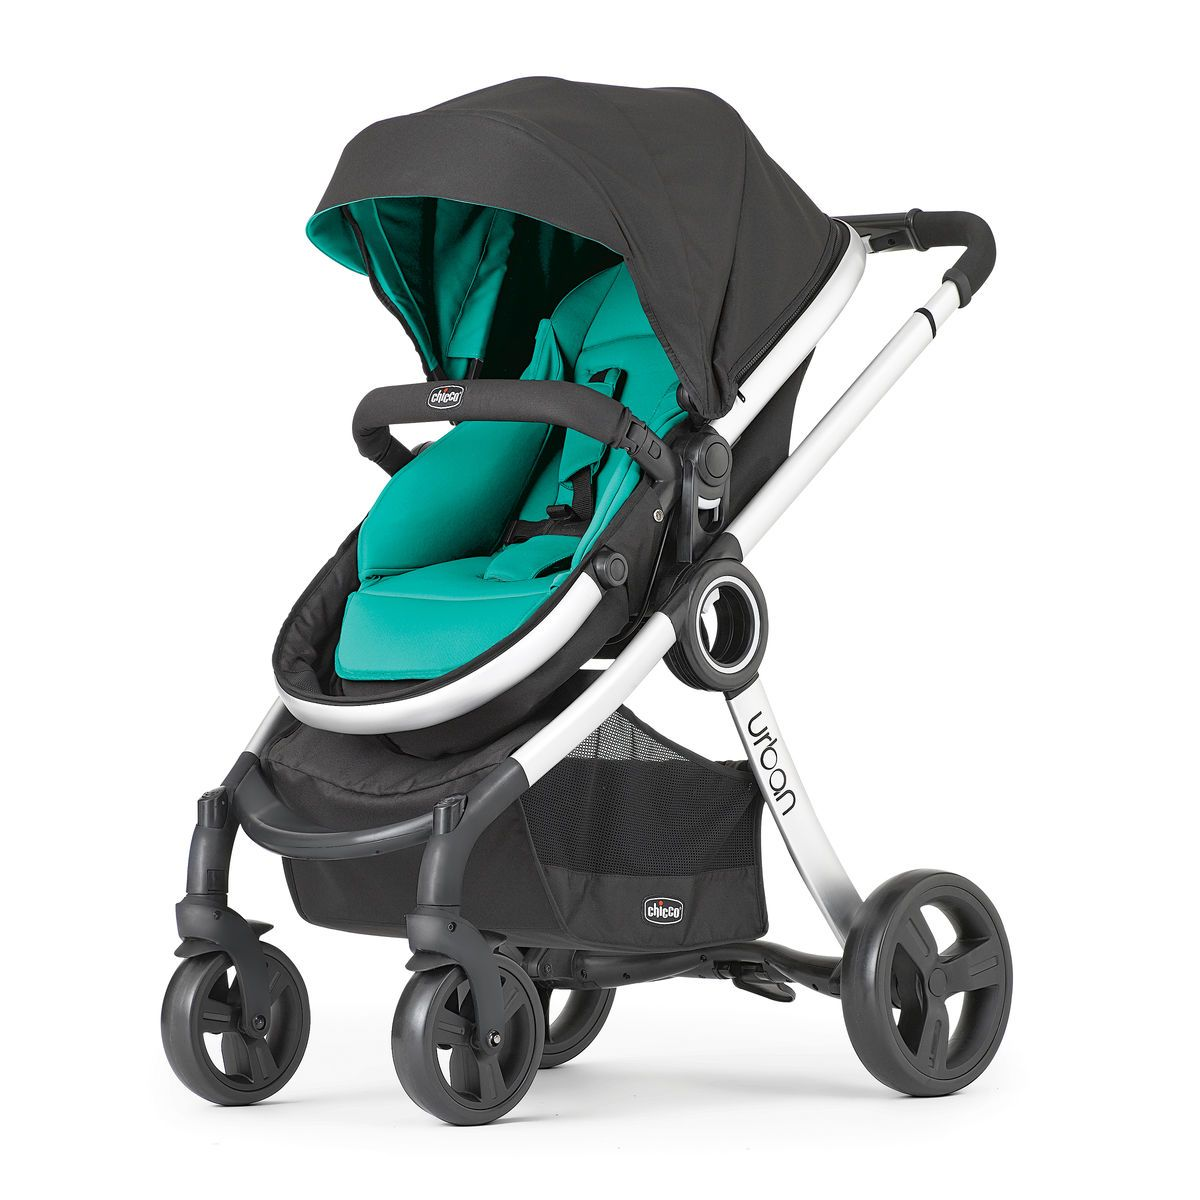 Chicco Kinderwagen 3 In 1 Chicco Chicco Urban 6 In 1 Modular Stroller Emerald